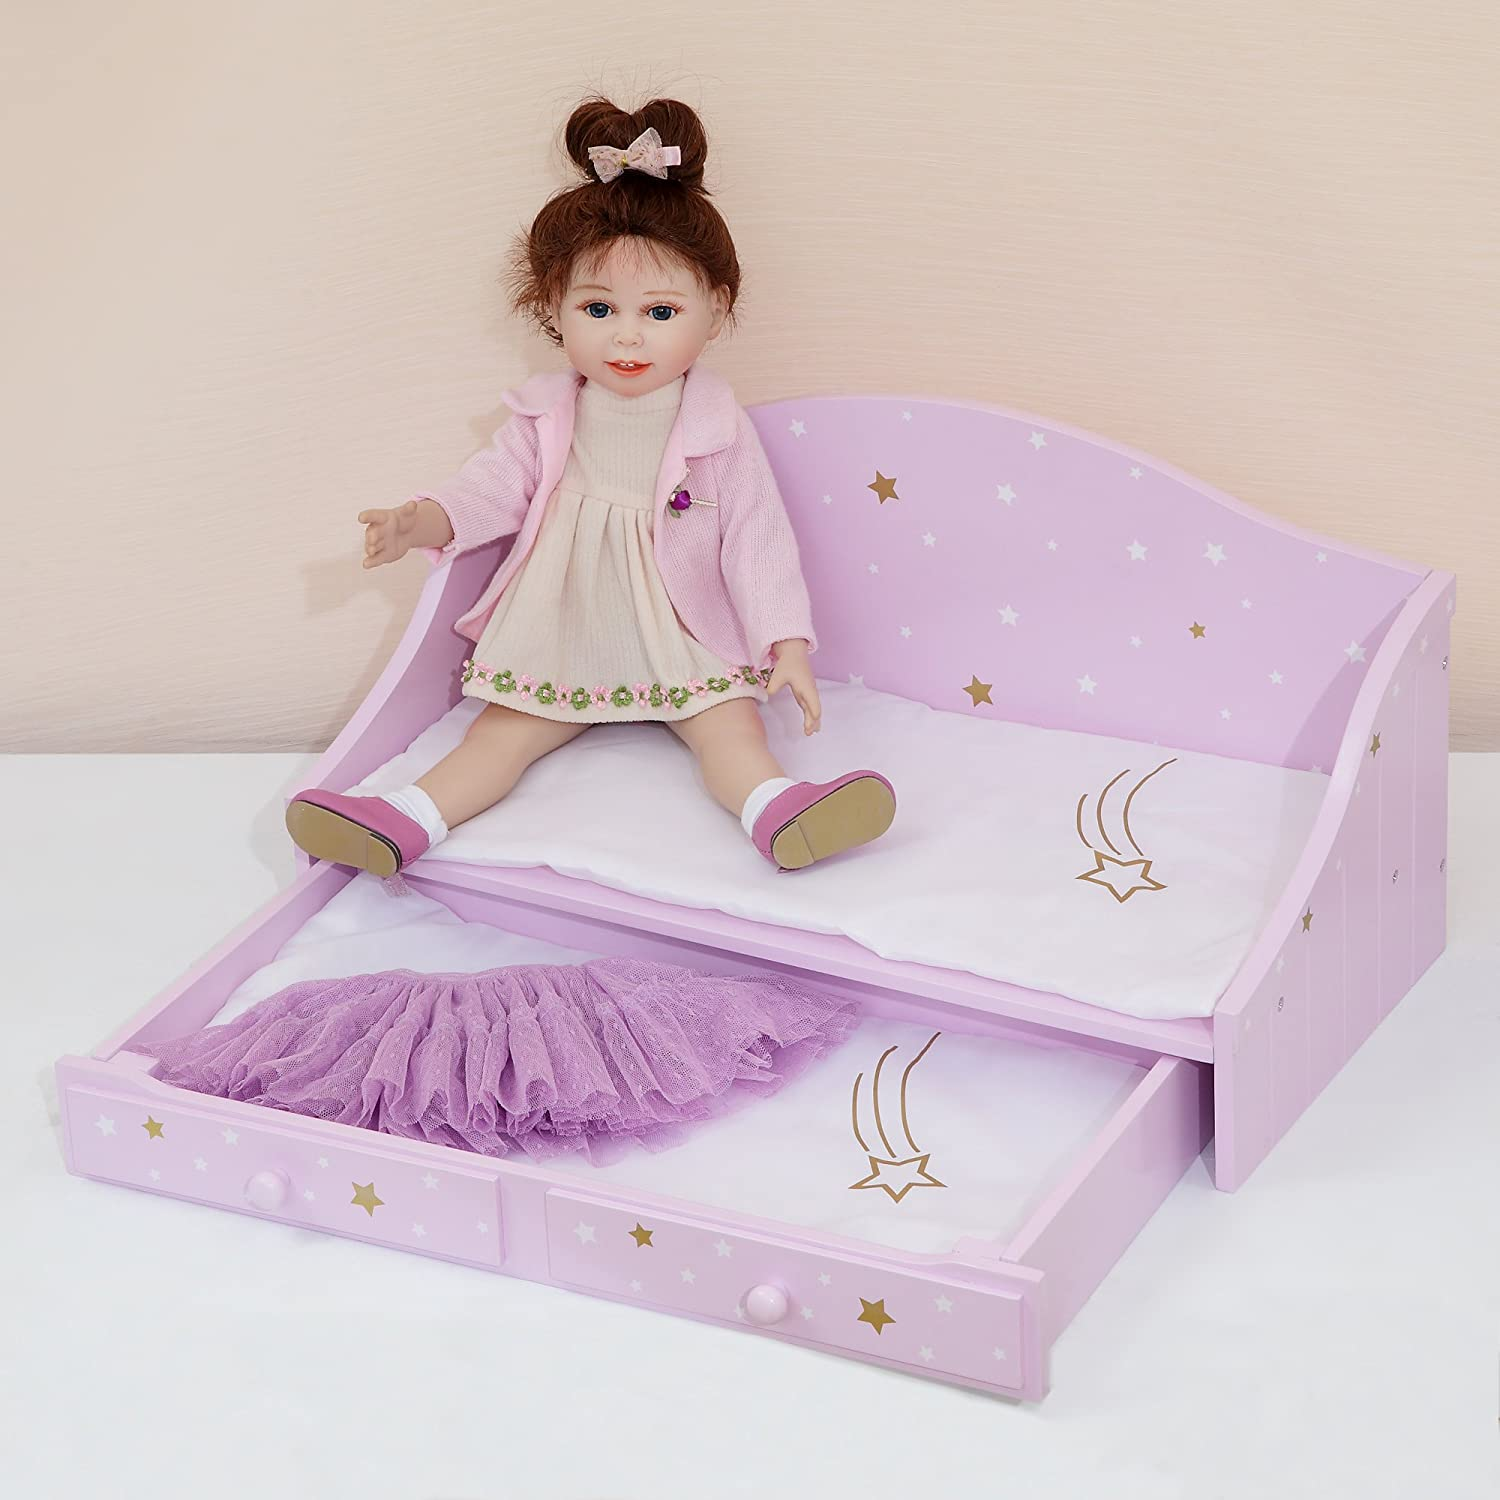 Olivia's Little World 18  Doll Furniture Trundle Bed, Purple gold, 21.5  x 10.5  x 10.5